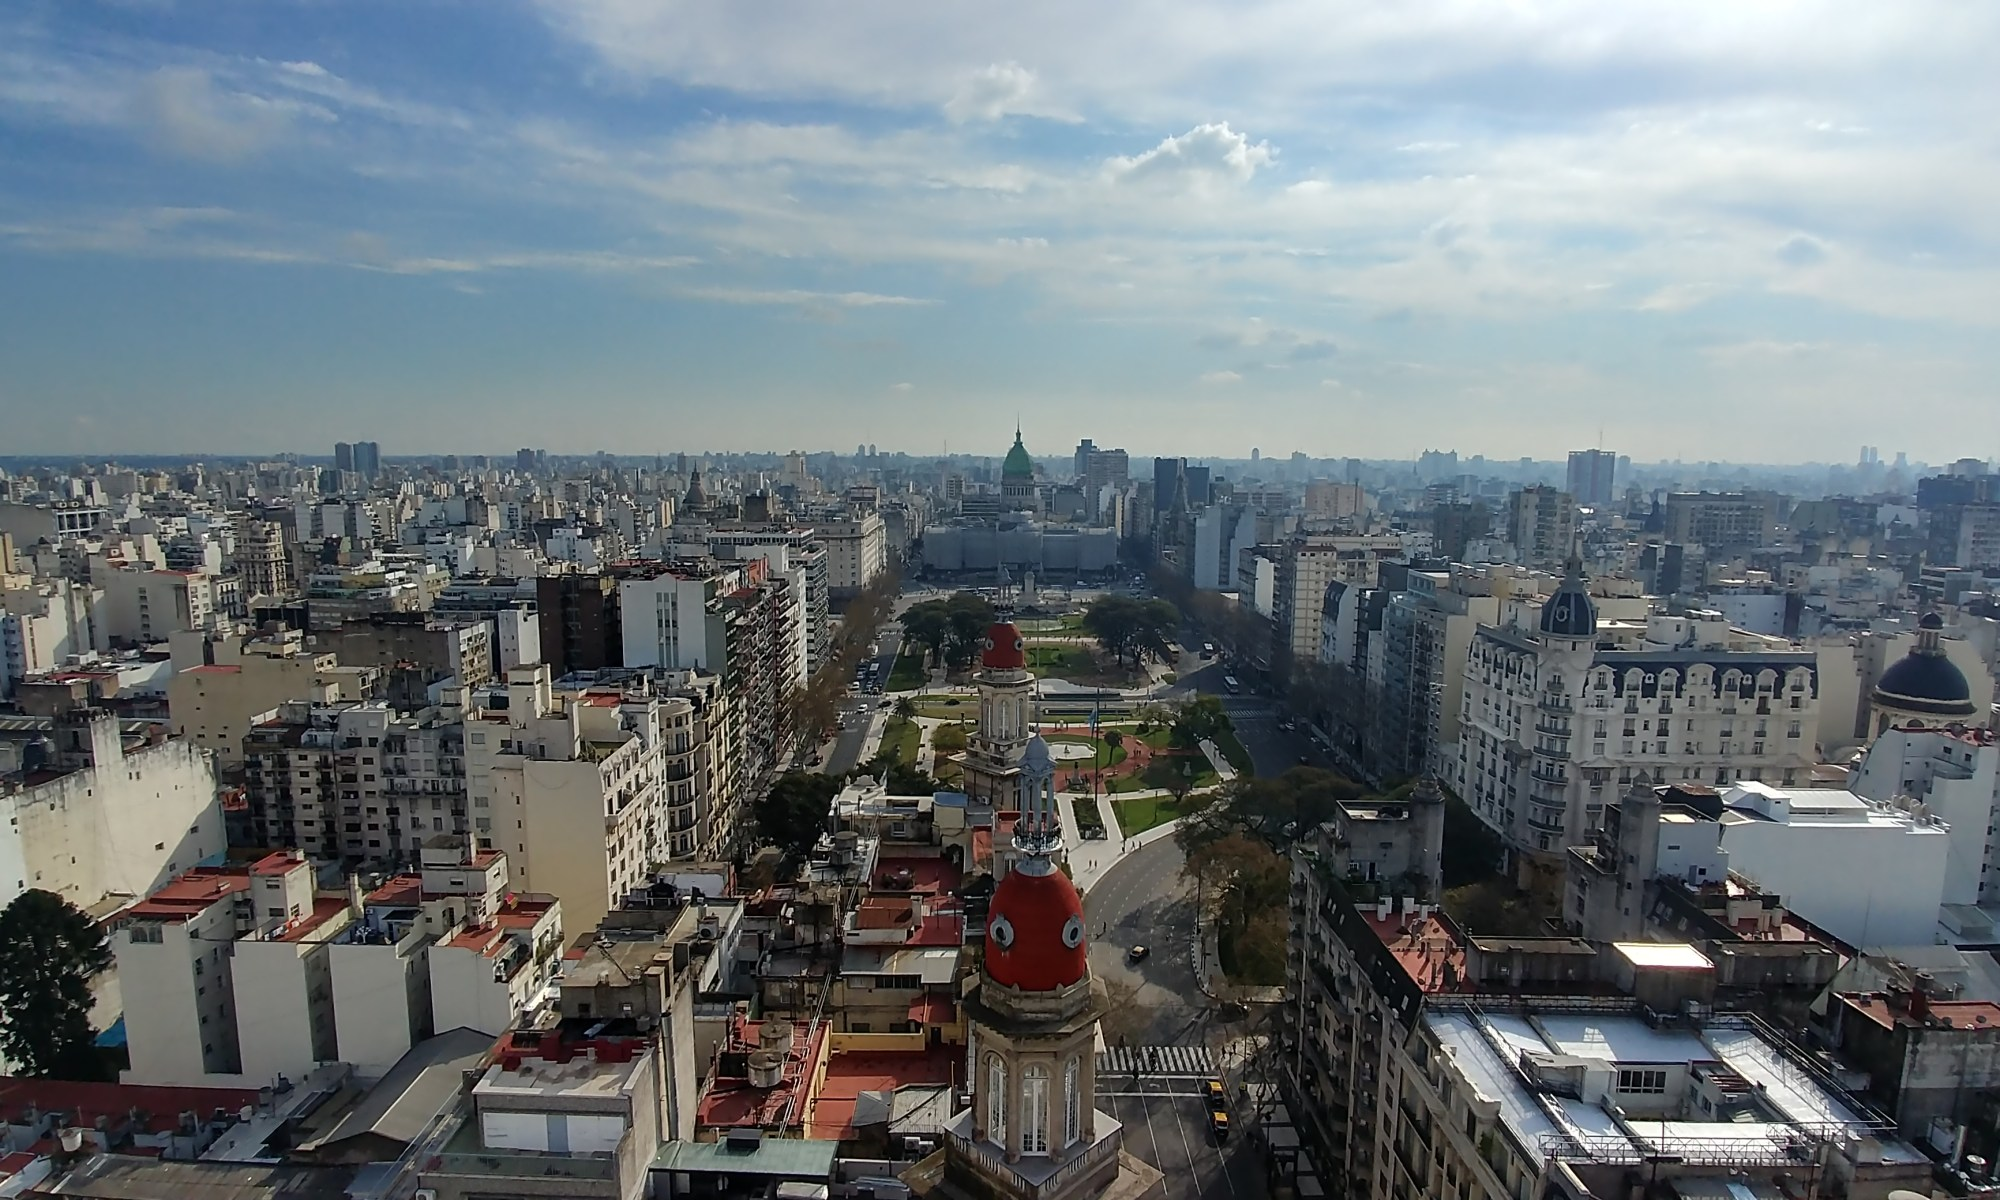 Buenos Aires, Argentina – September 10, 2019: Panorama from Salon 1923, rooftop bar on the 16th floor of the historic Palacio Barolo building.